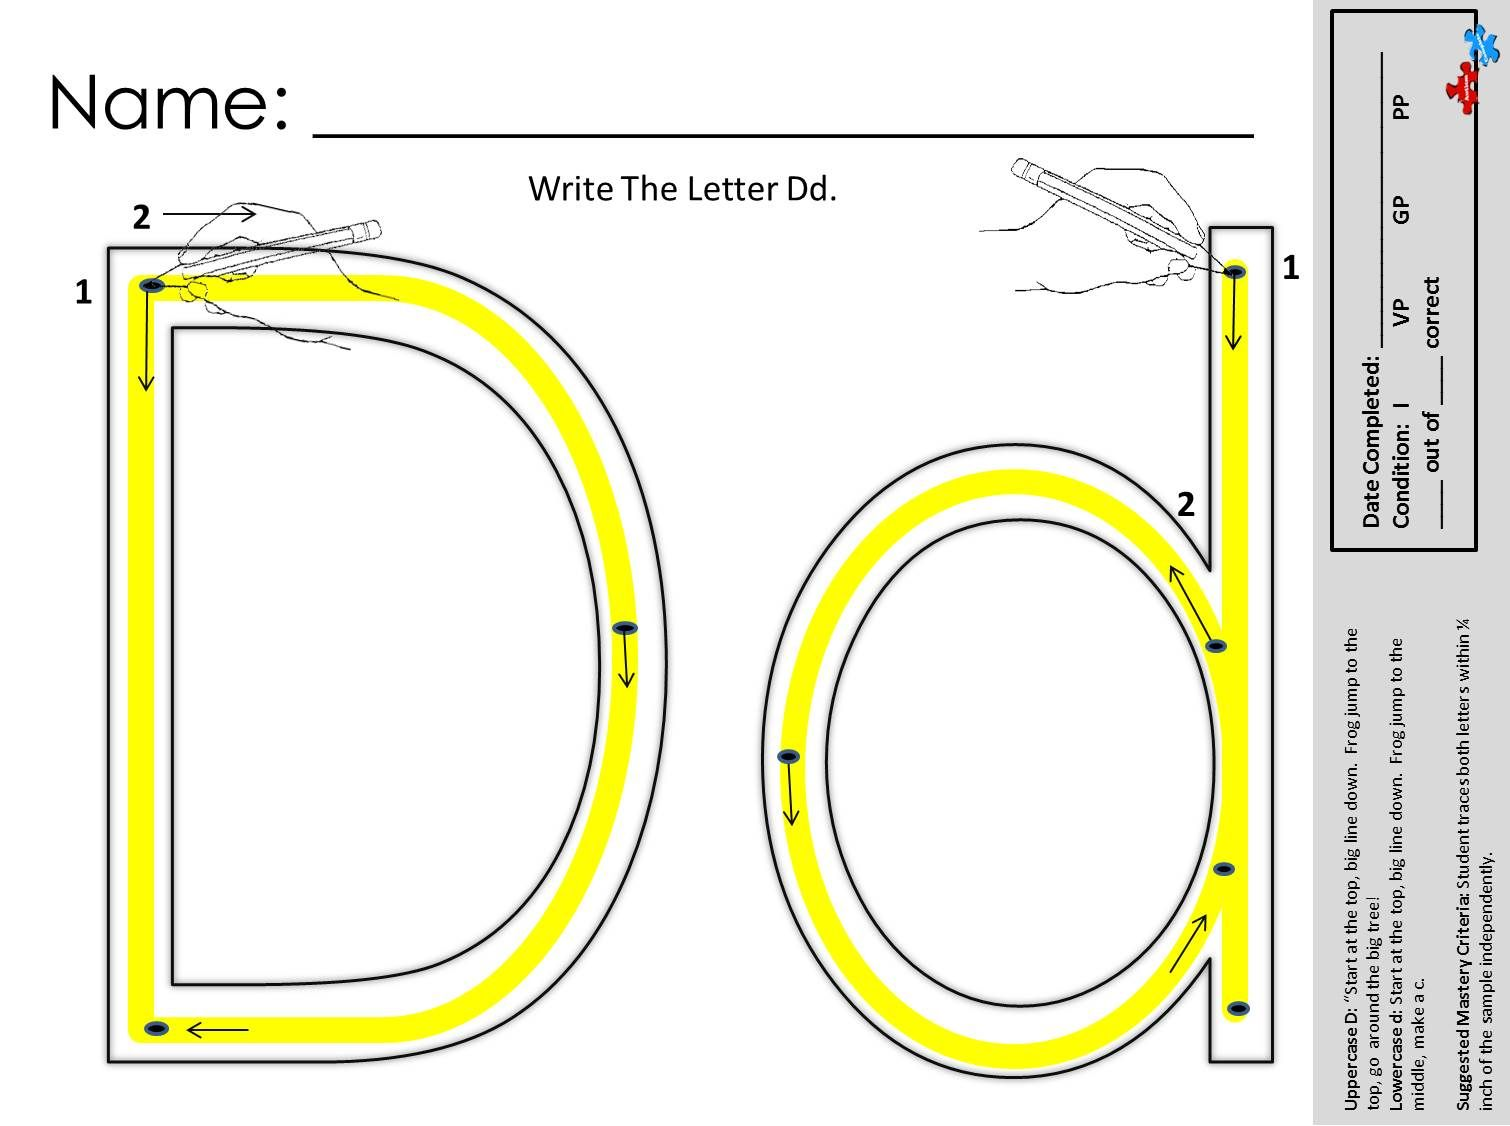 Find This And Other Great Free Printable Handwriting Works